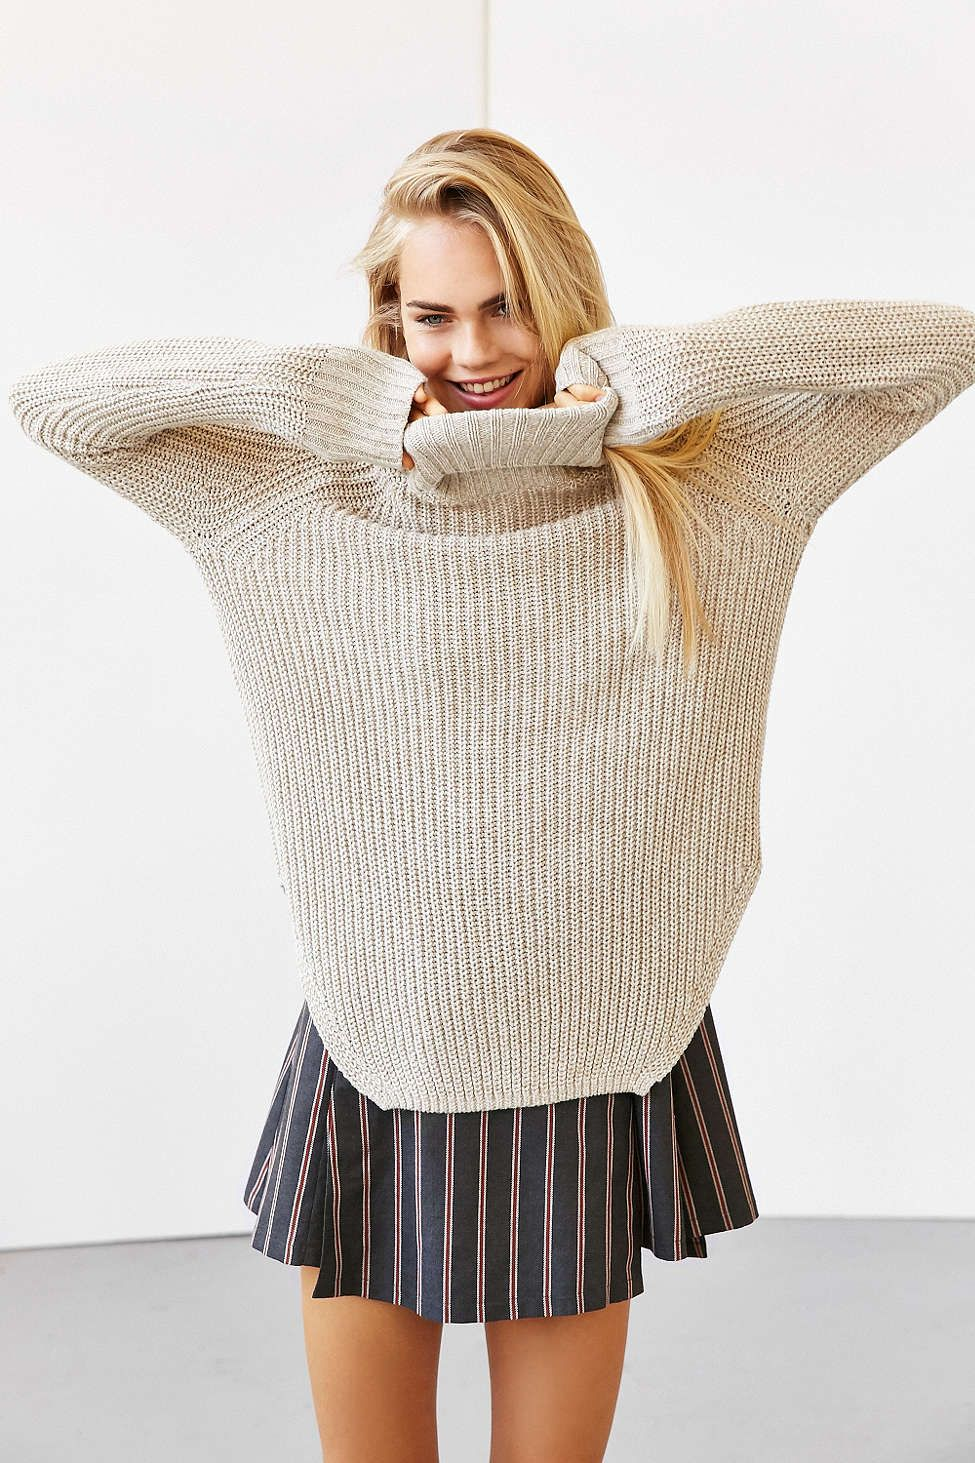 Silence + Noise Harley Shirttail Turtleneck Sweater , Urban Outfitters